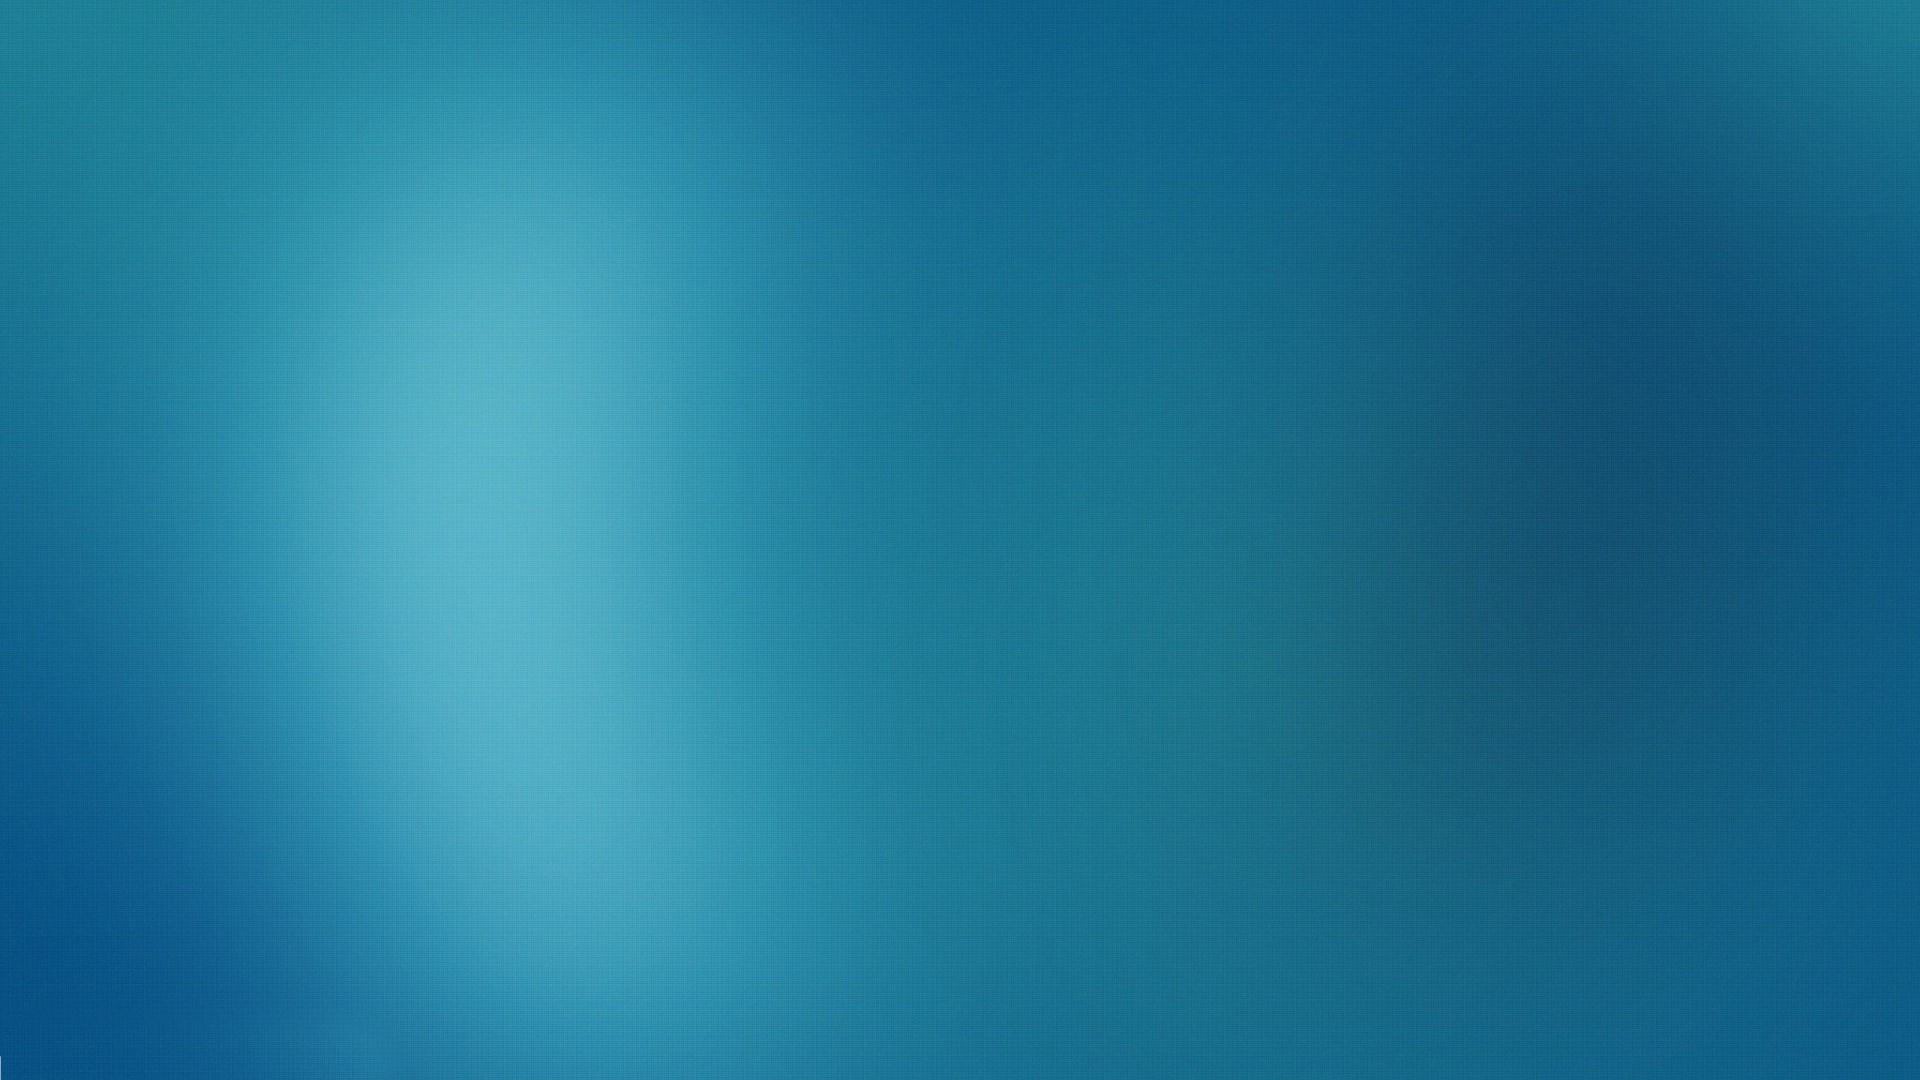 Blue gradient wallpaper 9832 1920x1080